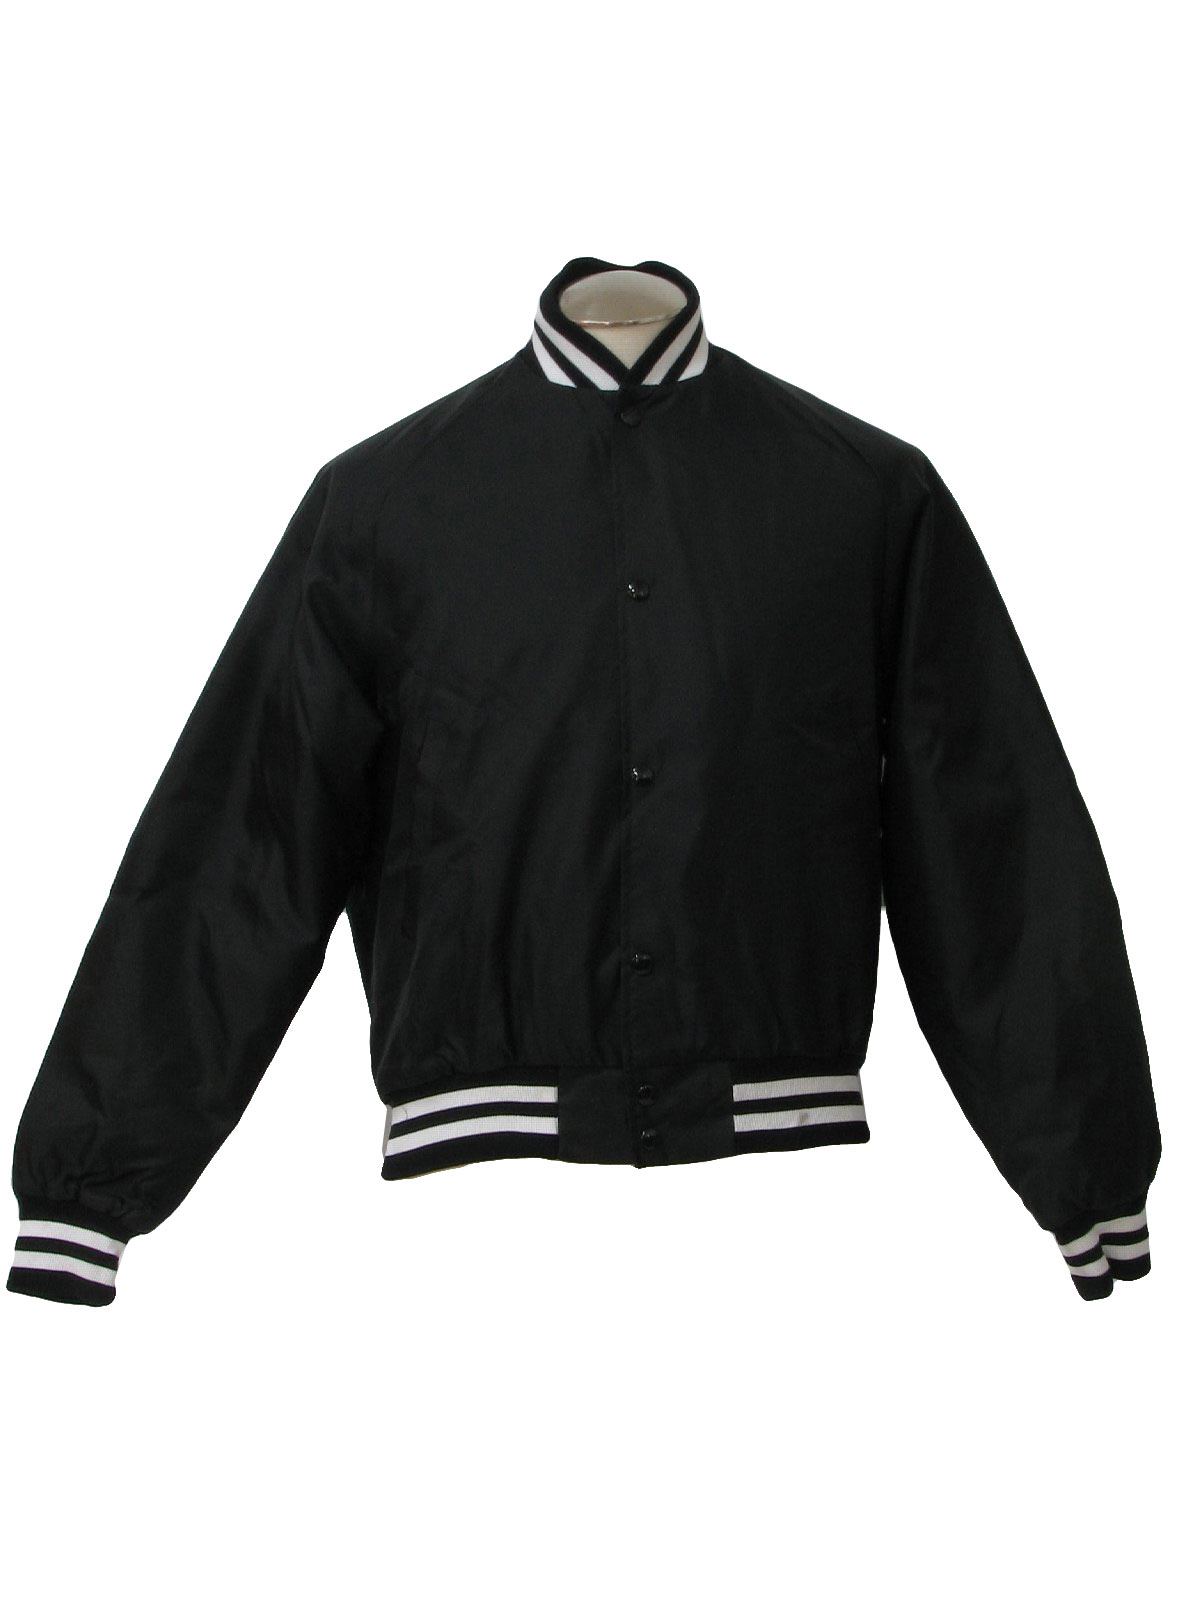 Westark 80&39s Vintage Jacket: 80s -Westark- Mens black and white